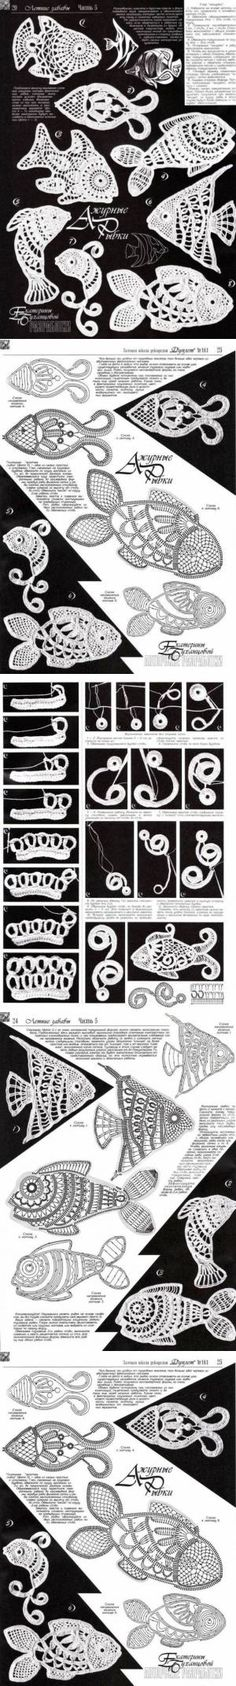 Collection motifs: fish in the technique of Irish lace   SAMOBRANOCHKA - site for the needle women, masters   Ирландское кружево.   Постила